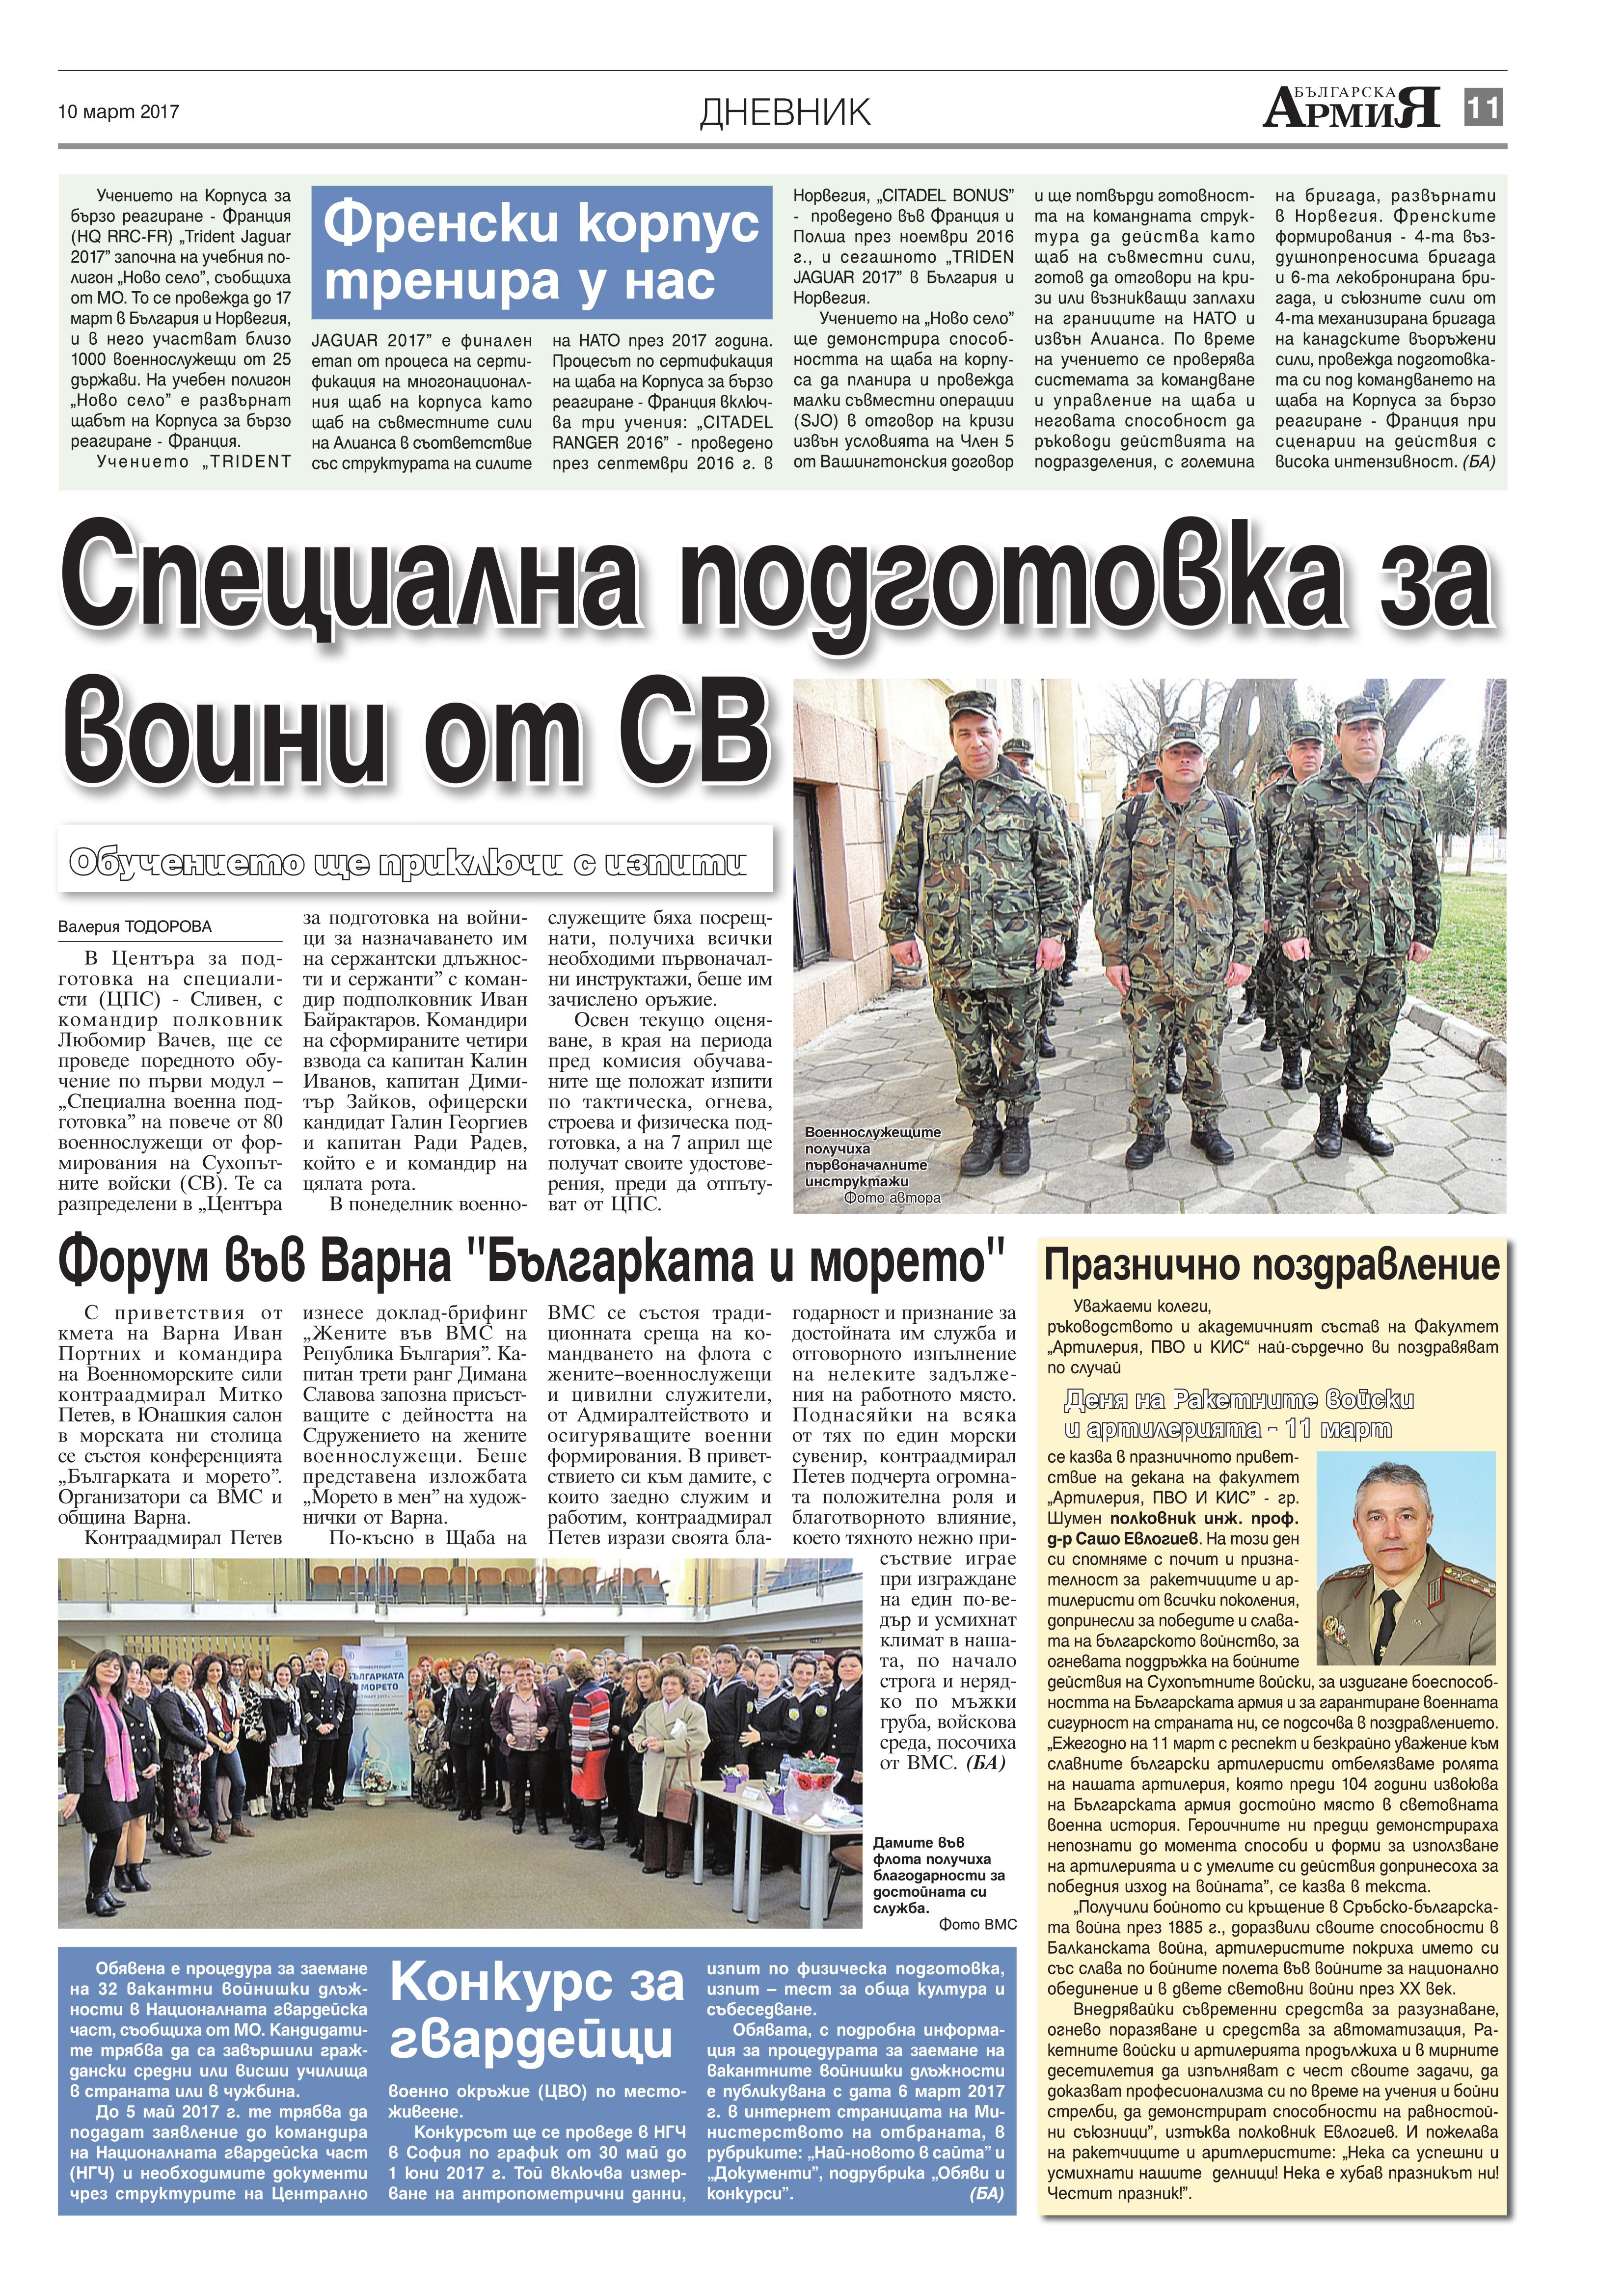 https://www.armymedia.bg/wp-content/uploads/2015/06/11.page1_-16.jpg